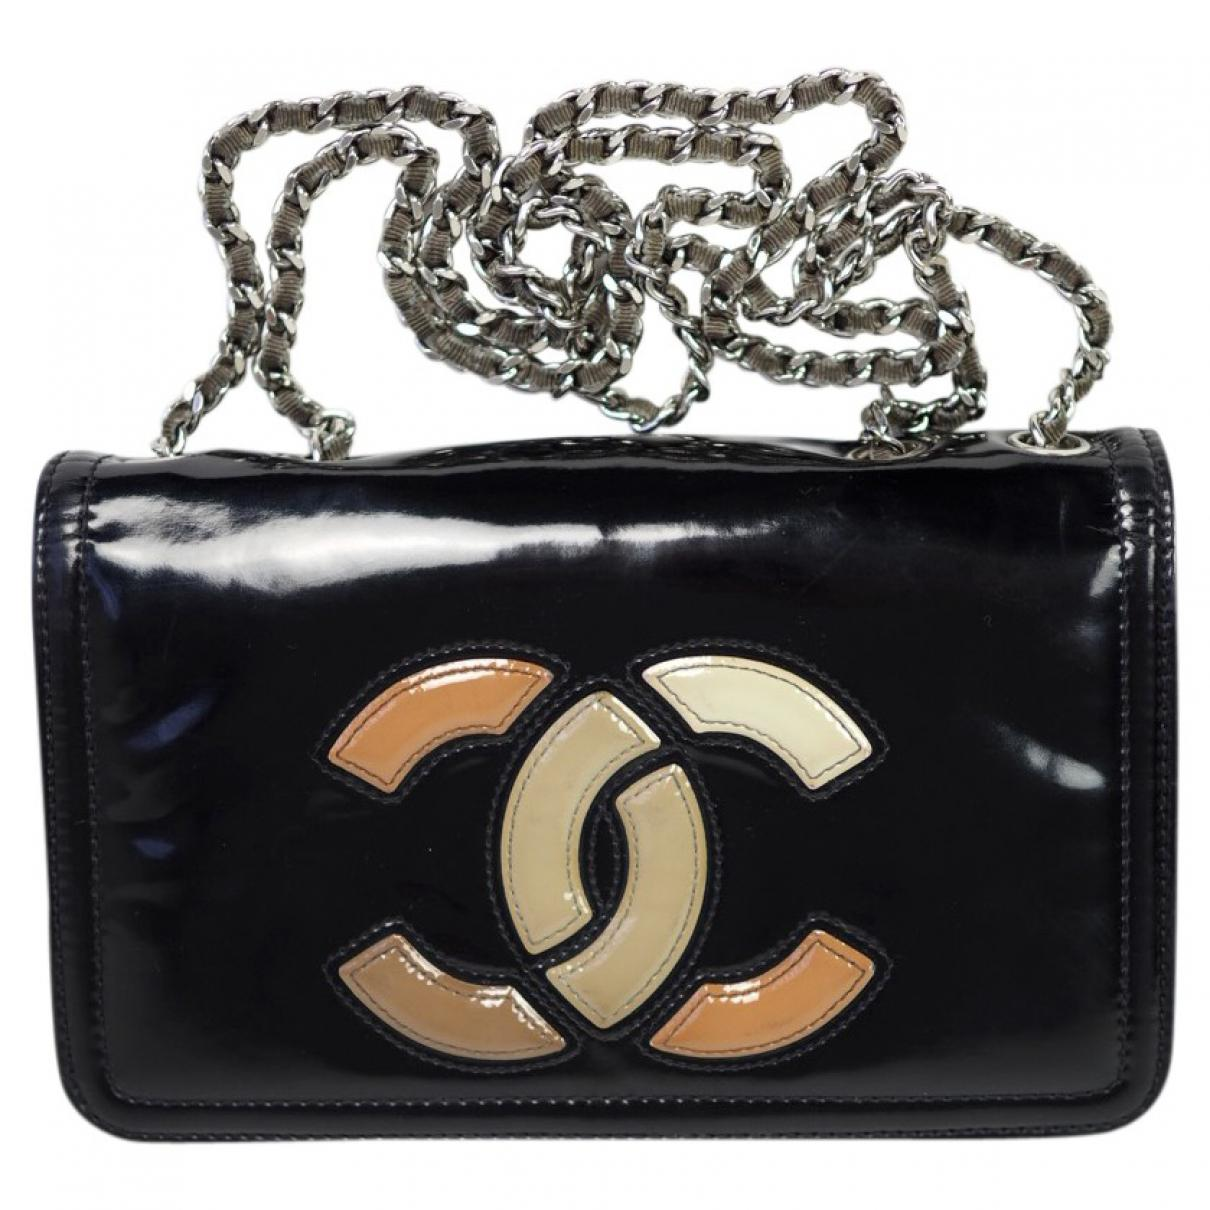 Pre-owned - Patent leather crossbody bag Chanel 8Nkxp